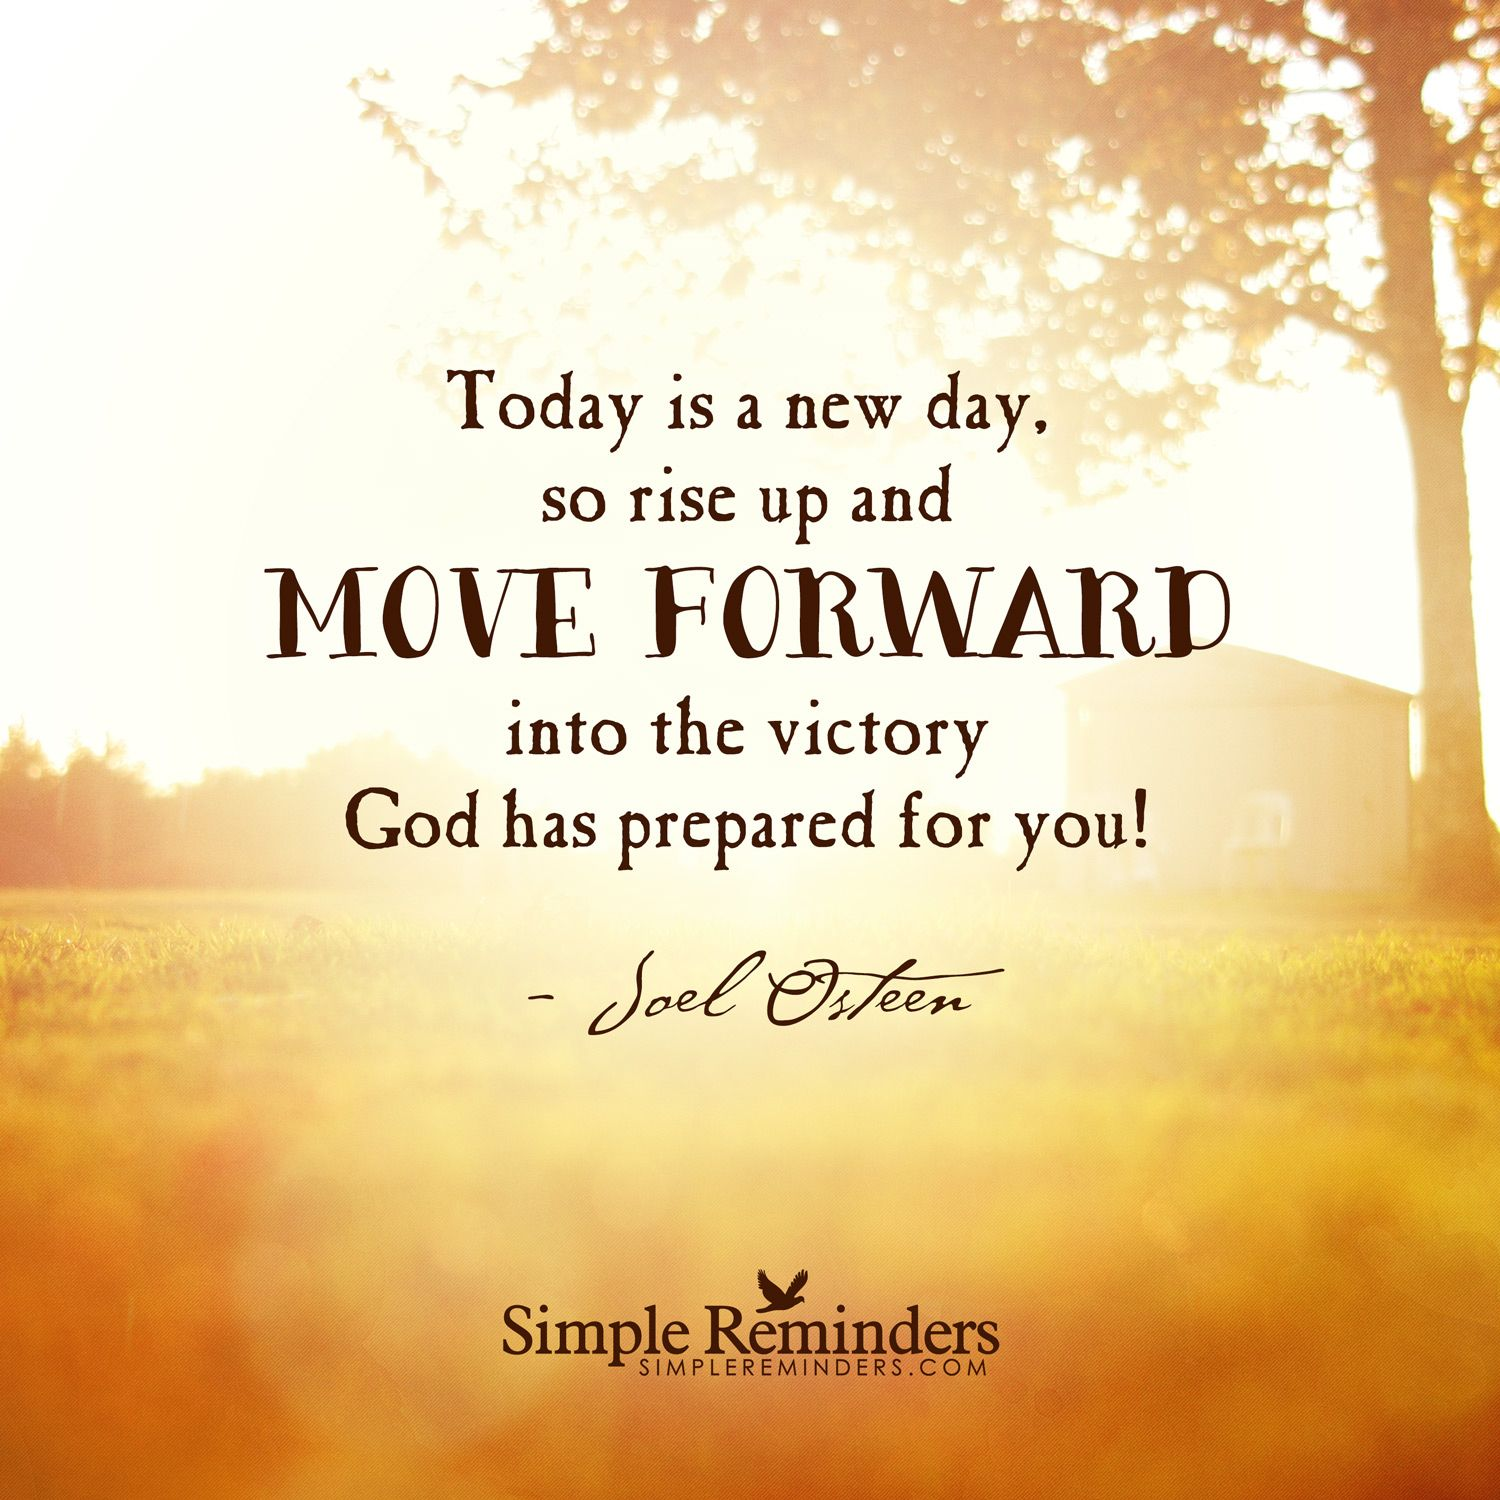 Today is a new day, so rise up and move forward into the victory